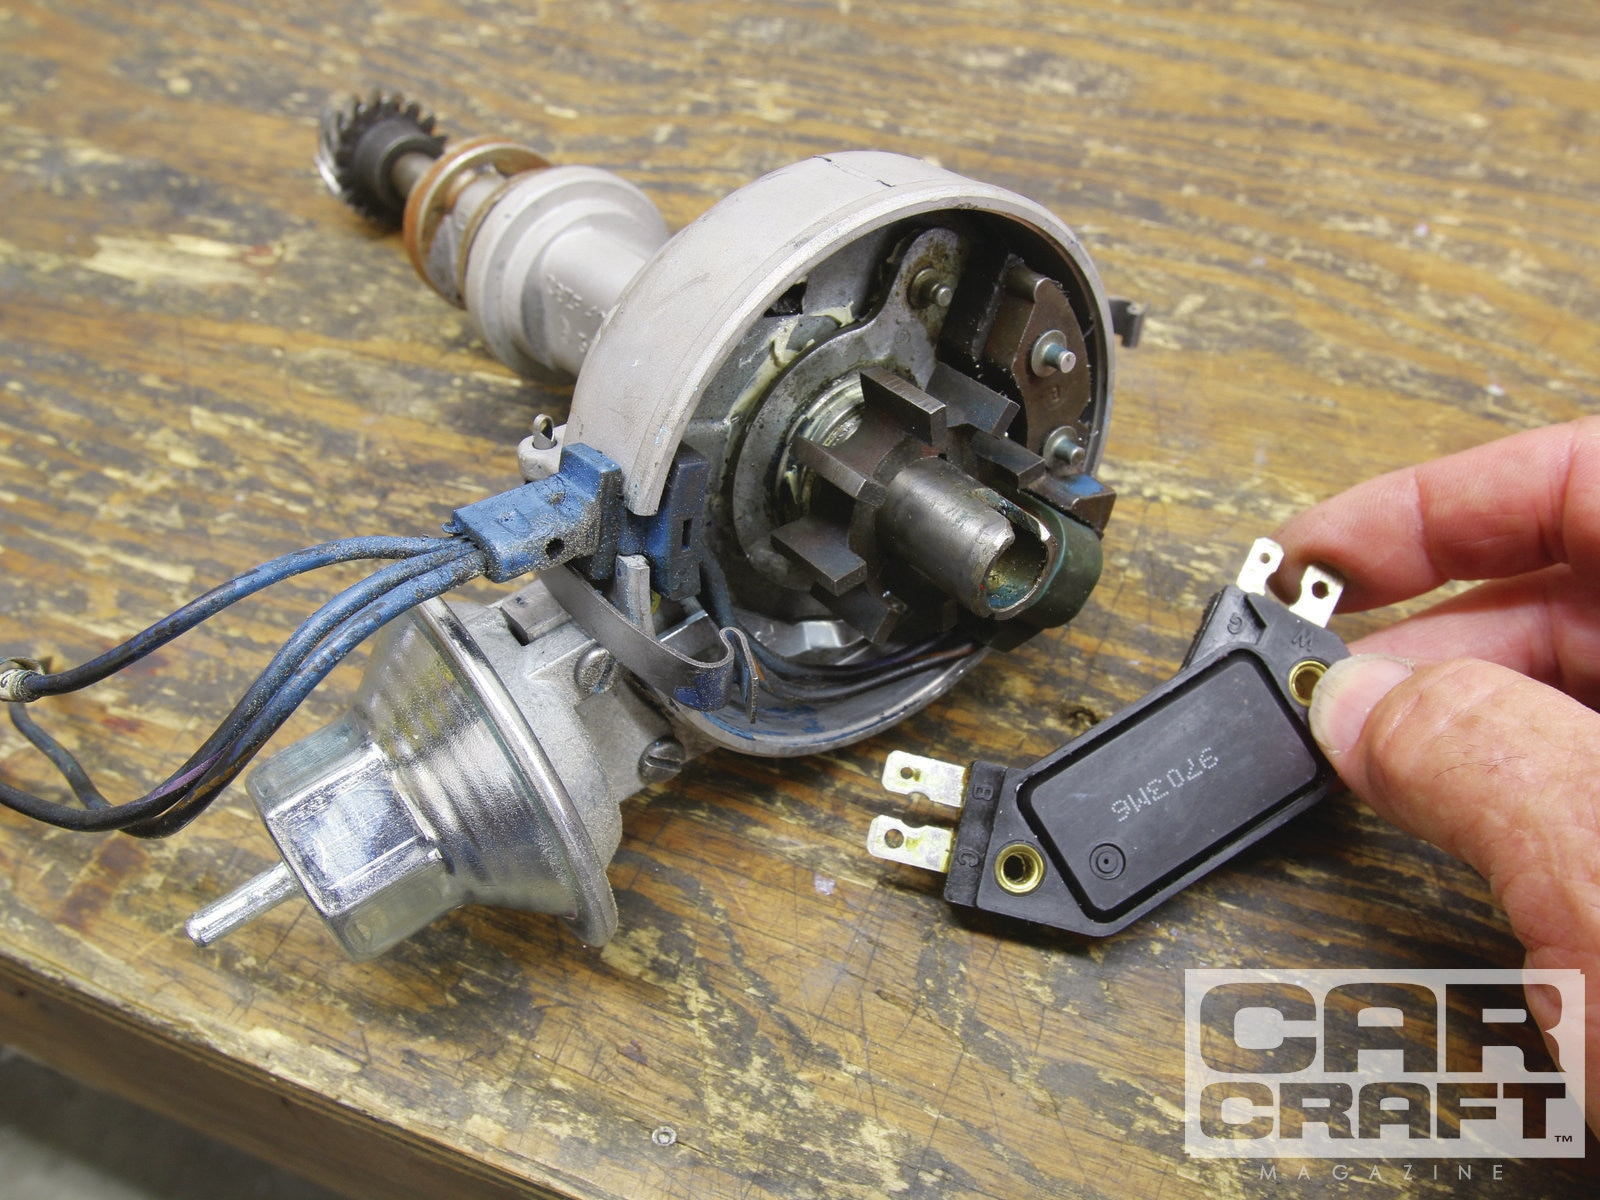 hight resolution of how to convert a ford or chrysler ignition to gm hei car crafthow to convert a